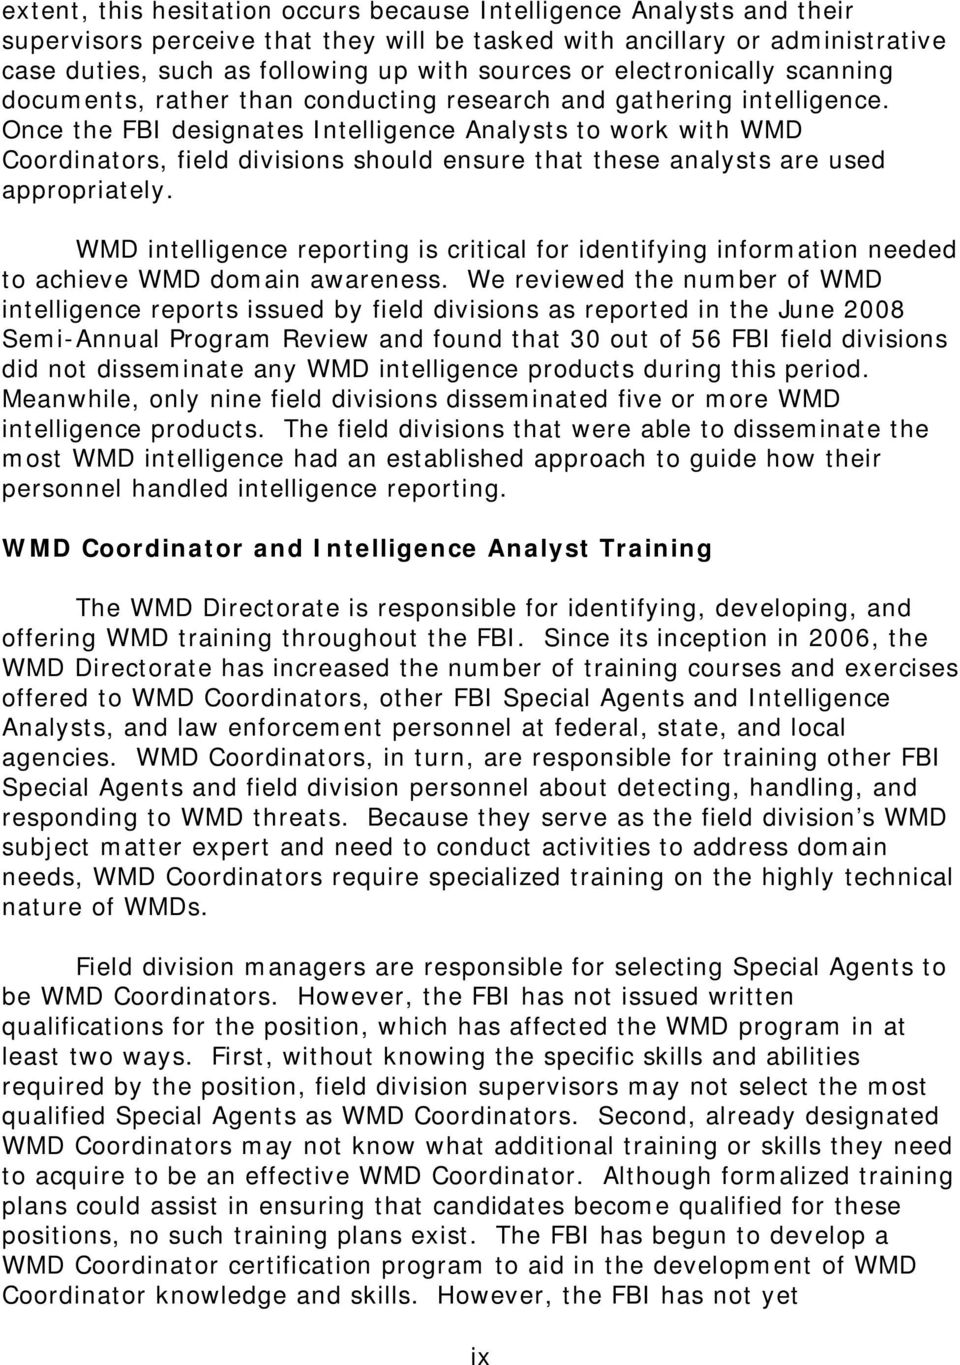 Once the FBI designates Intelligence Analysts to work with WMD Coordinators, field divisions should ensure that these analysts are used appropriately.